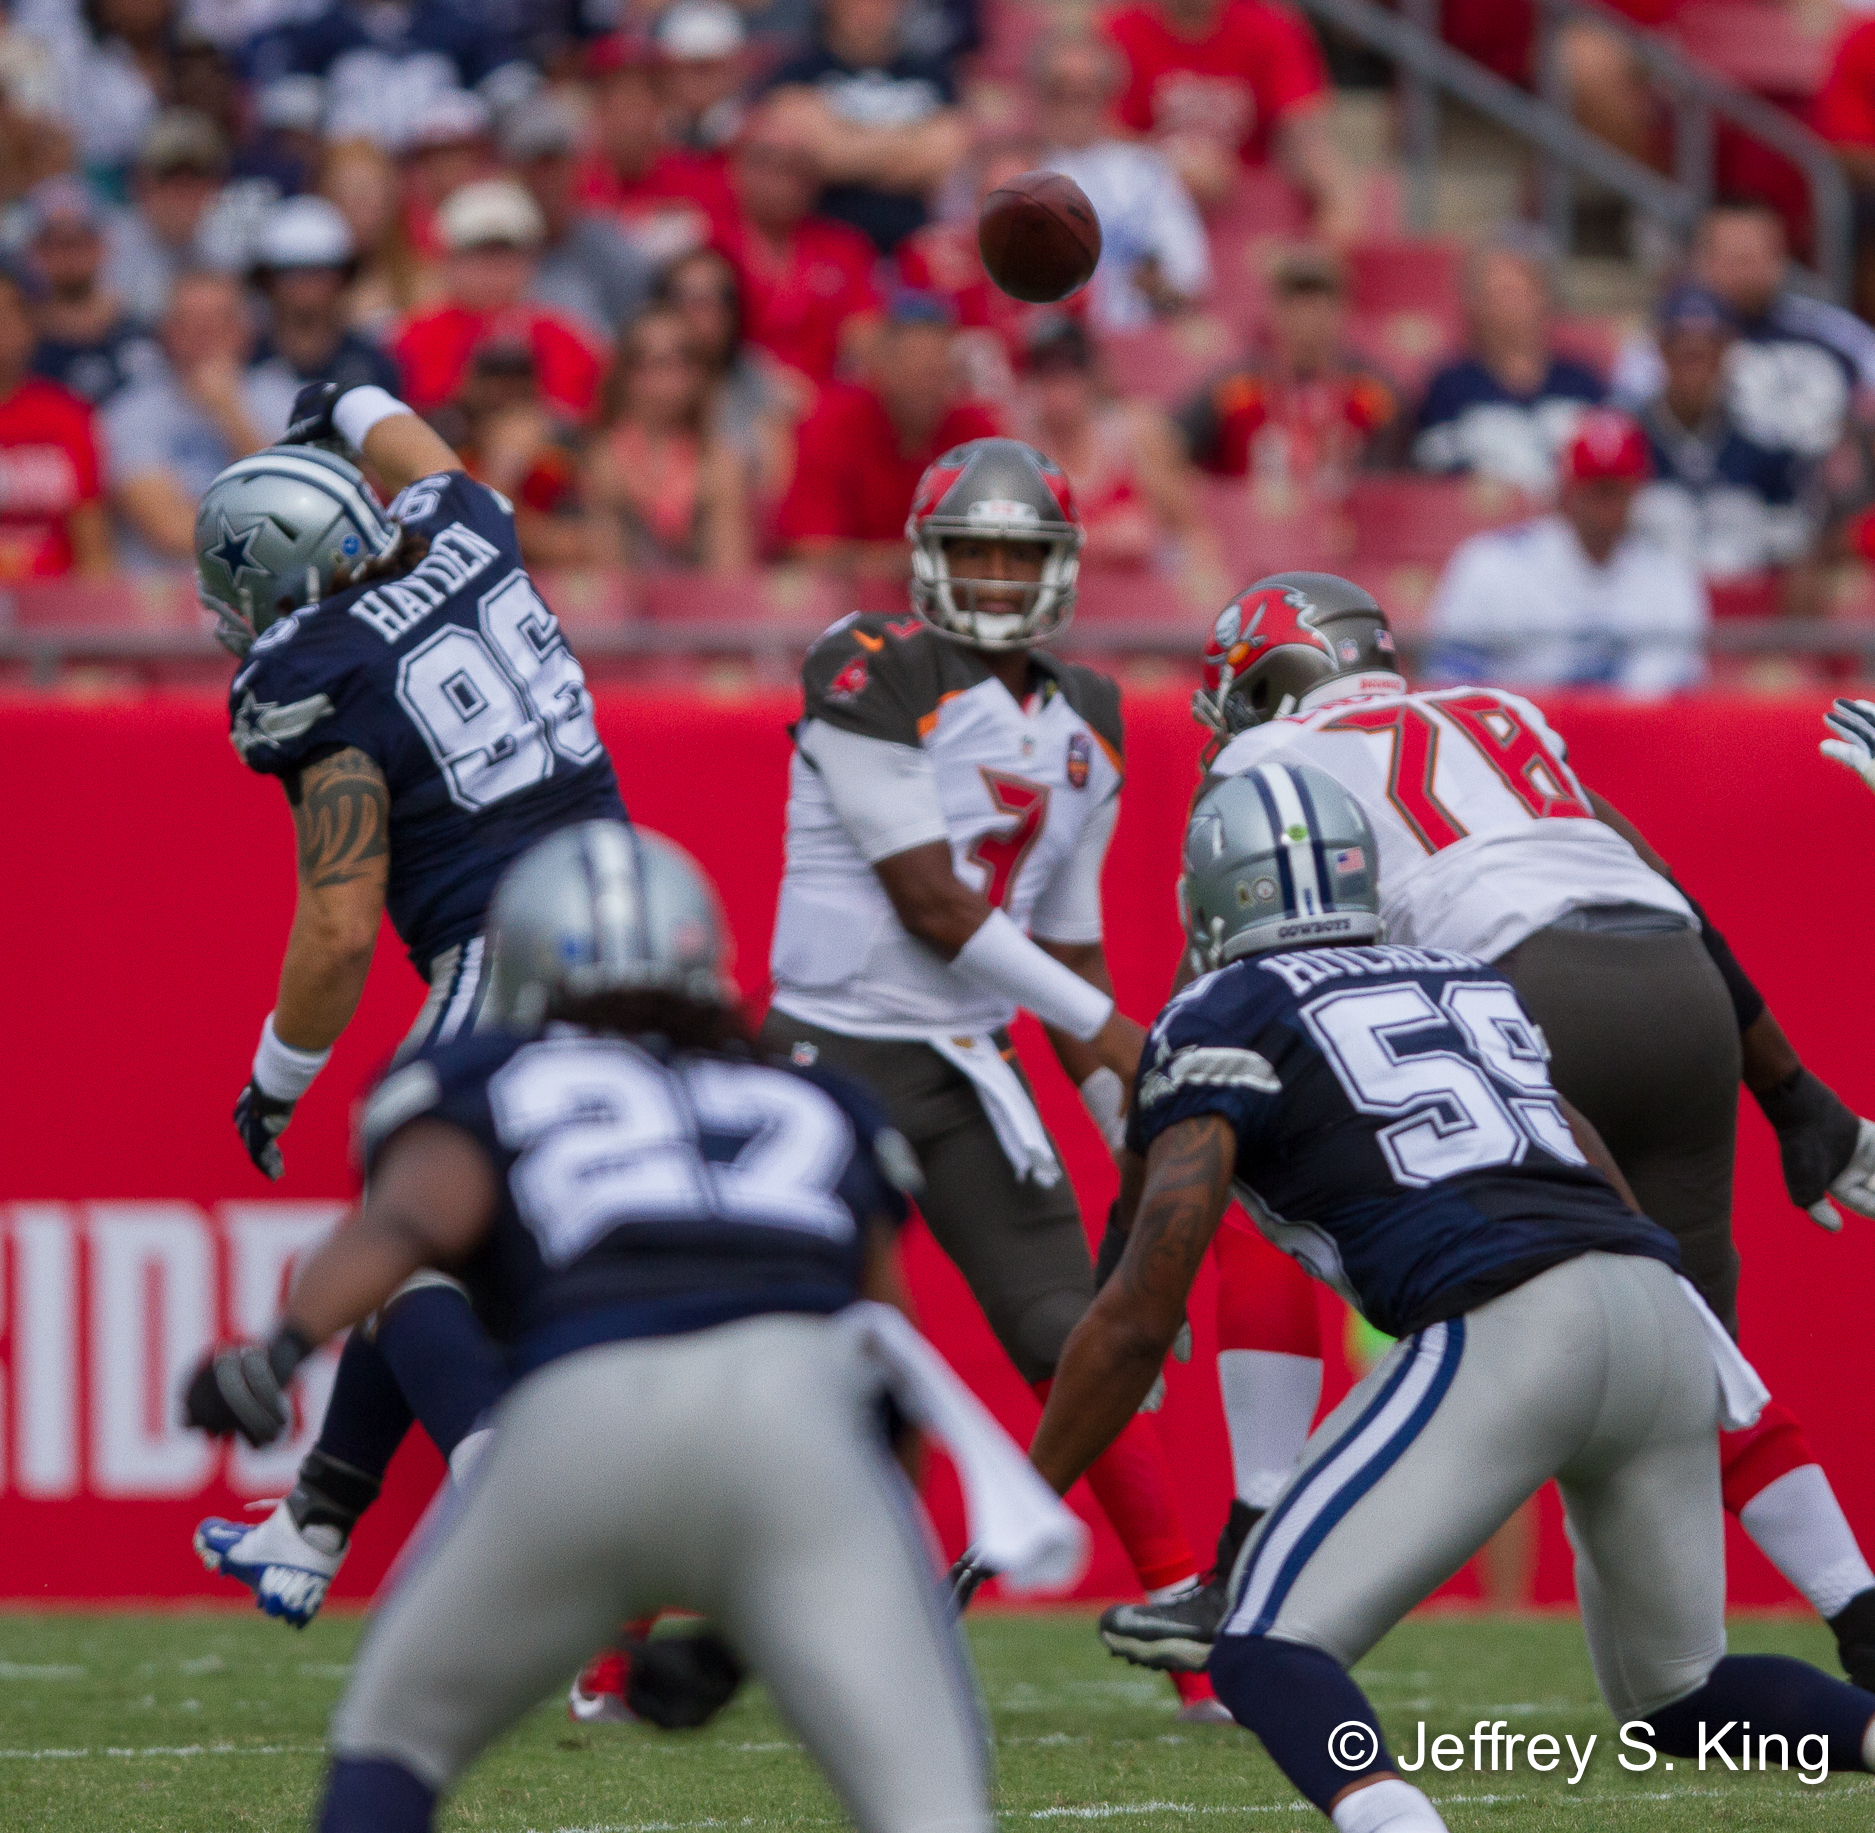 #3 Jameis Wilson throwing the ball (1 of 1)